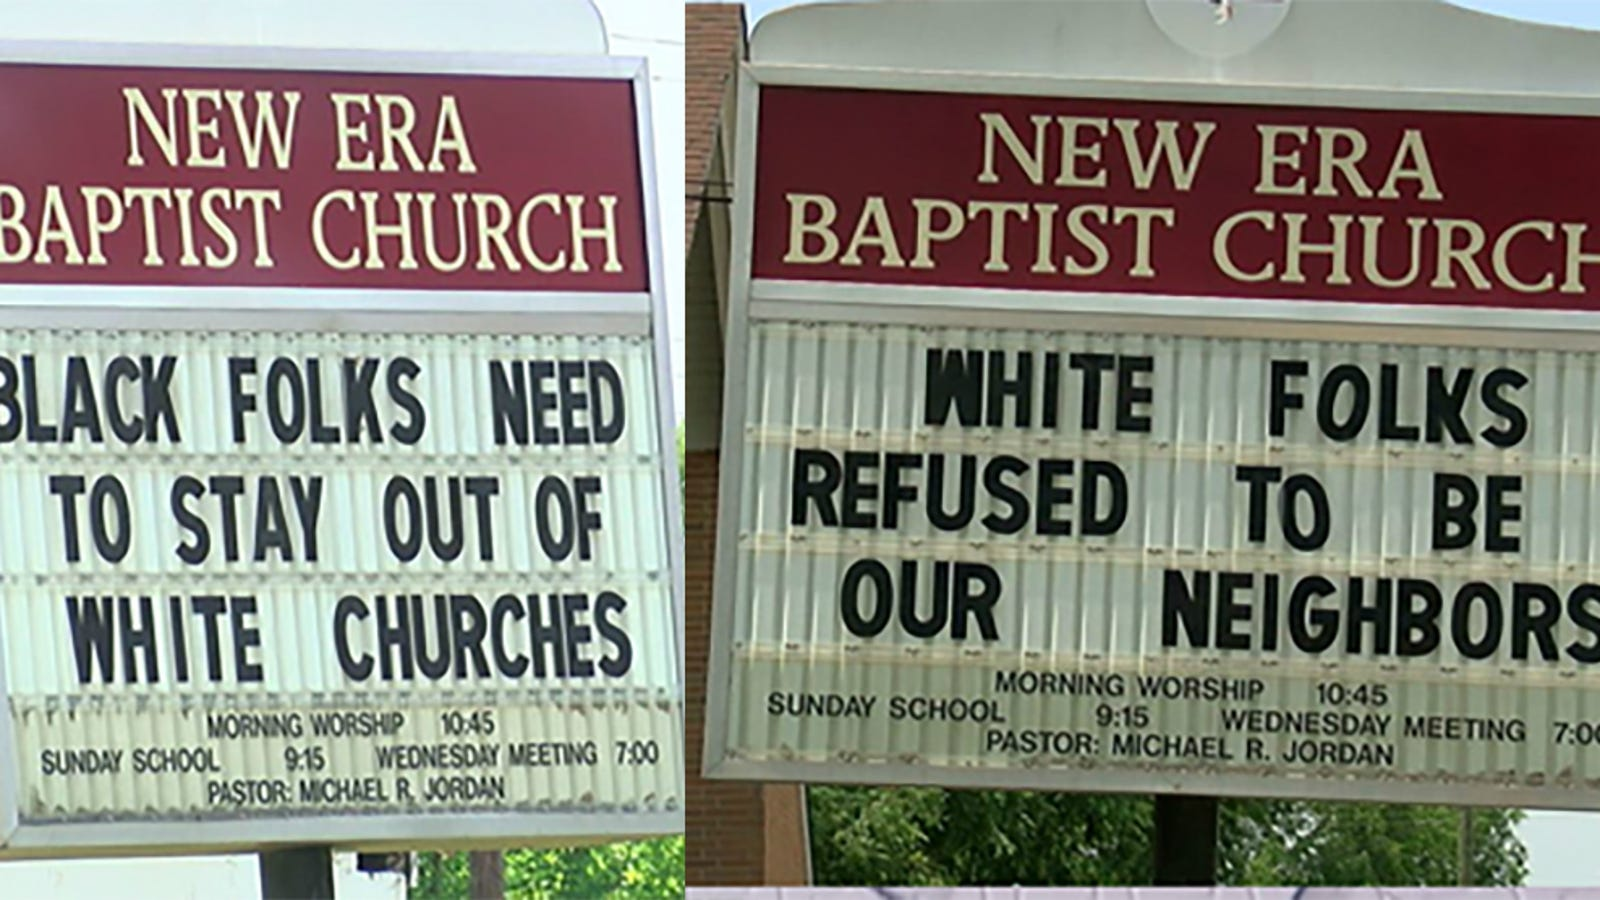 Pastor Fights Megachurch Gentrification With Sign Telling Black Folks to 'Stay Out of White Churches'